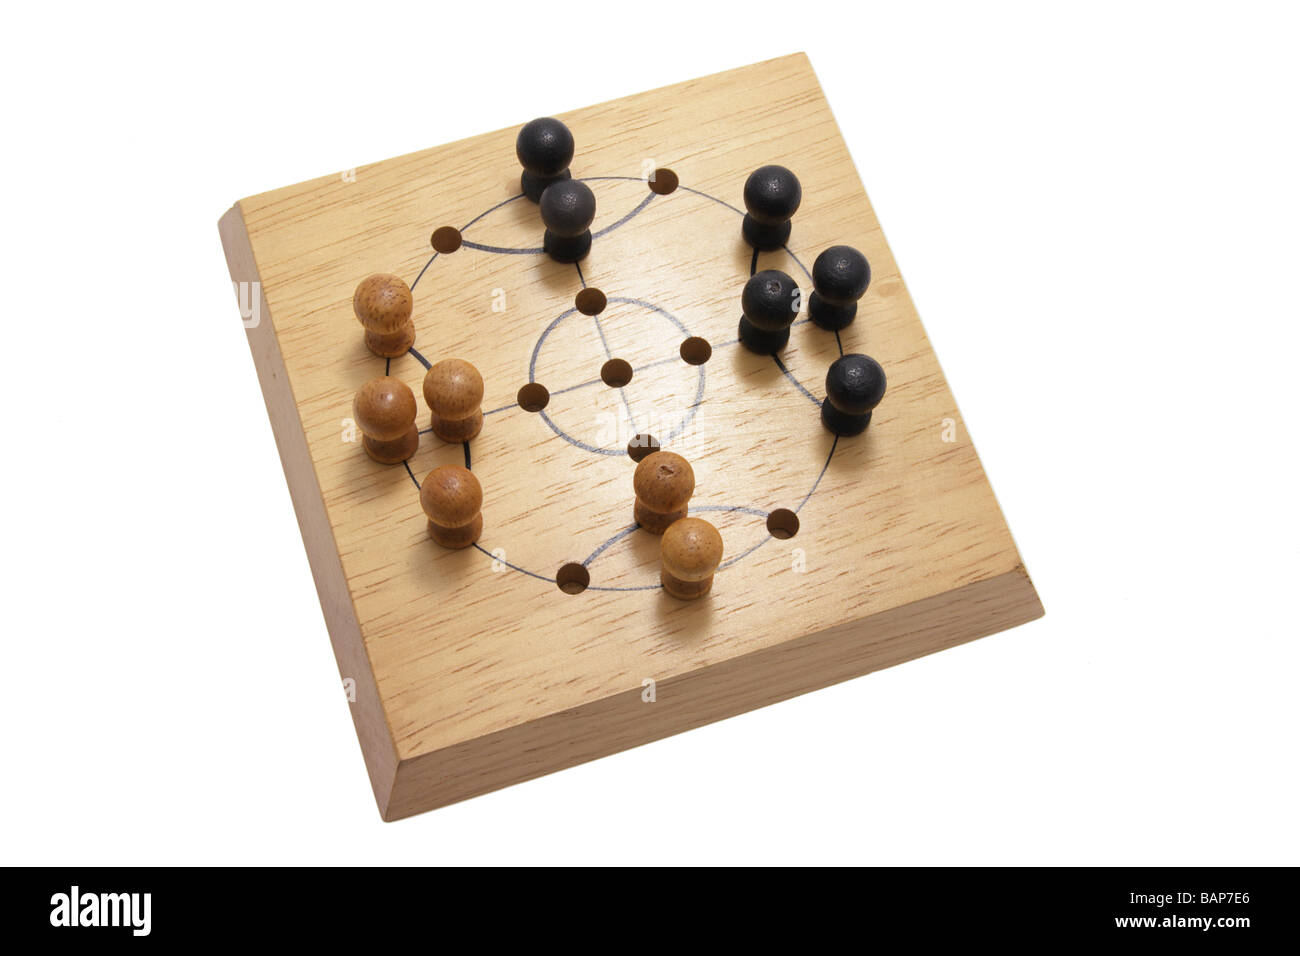 Wooden Board Game - Stock Image